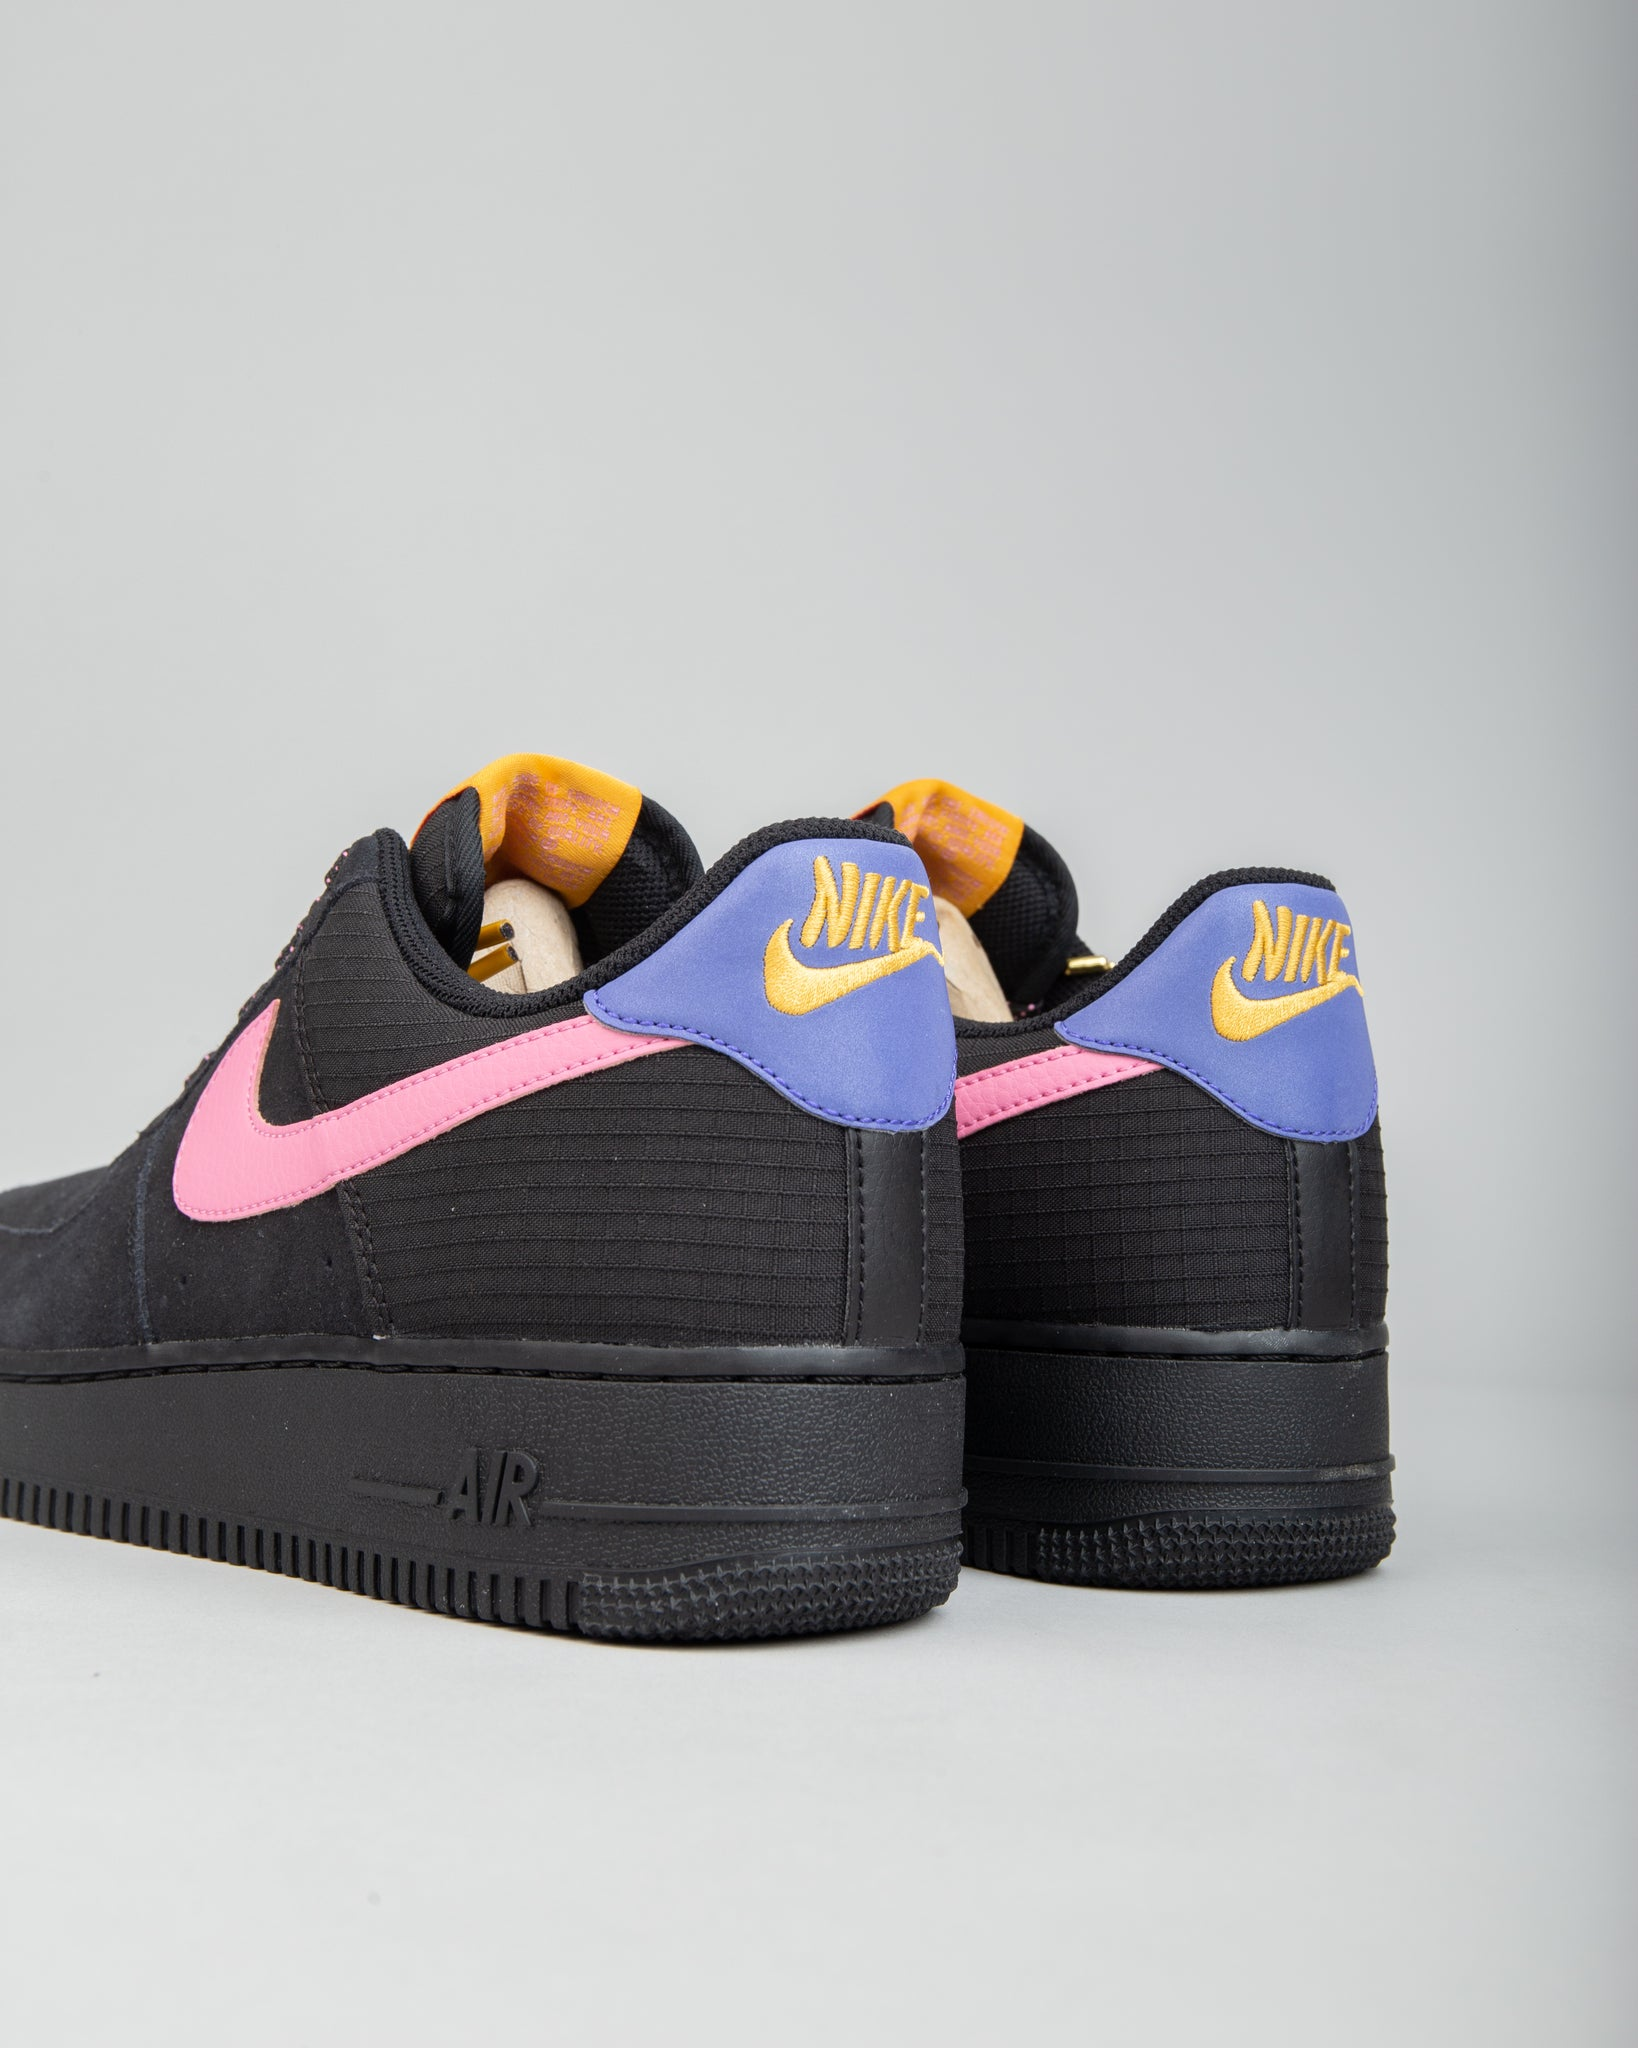 Air Force 1 '07 LV8 Black/Magic Flamingo/Persian Violet